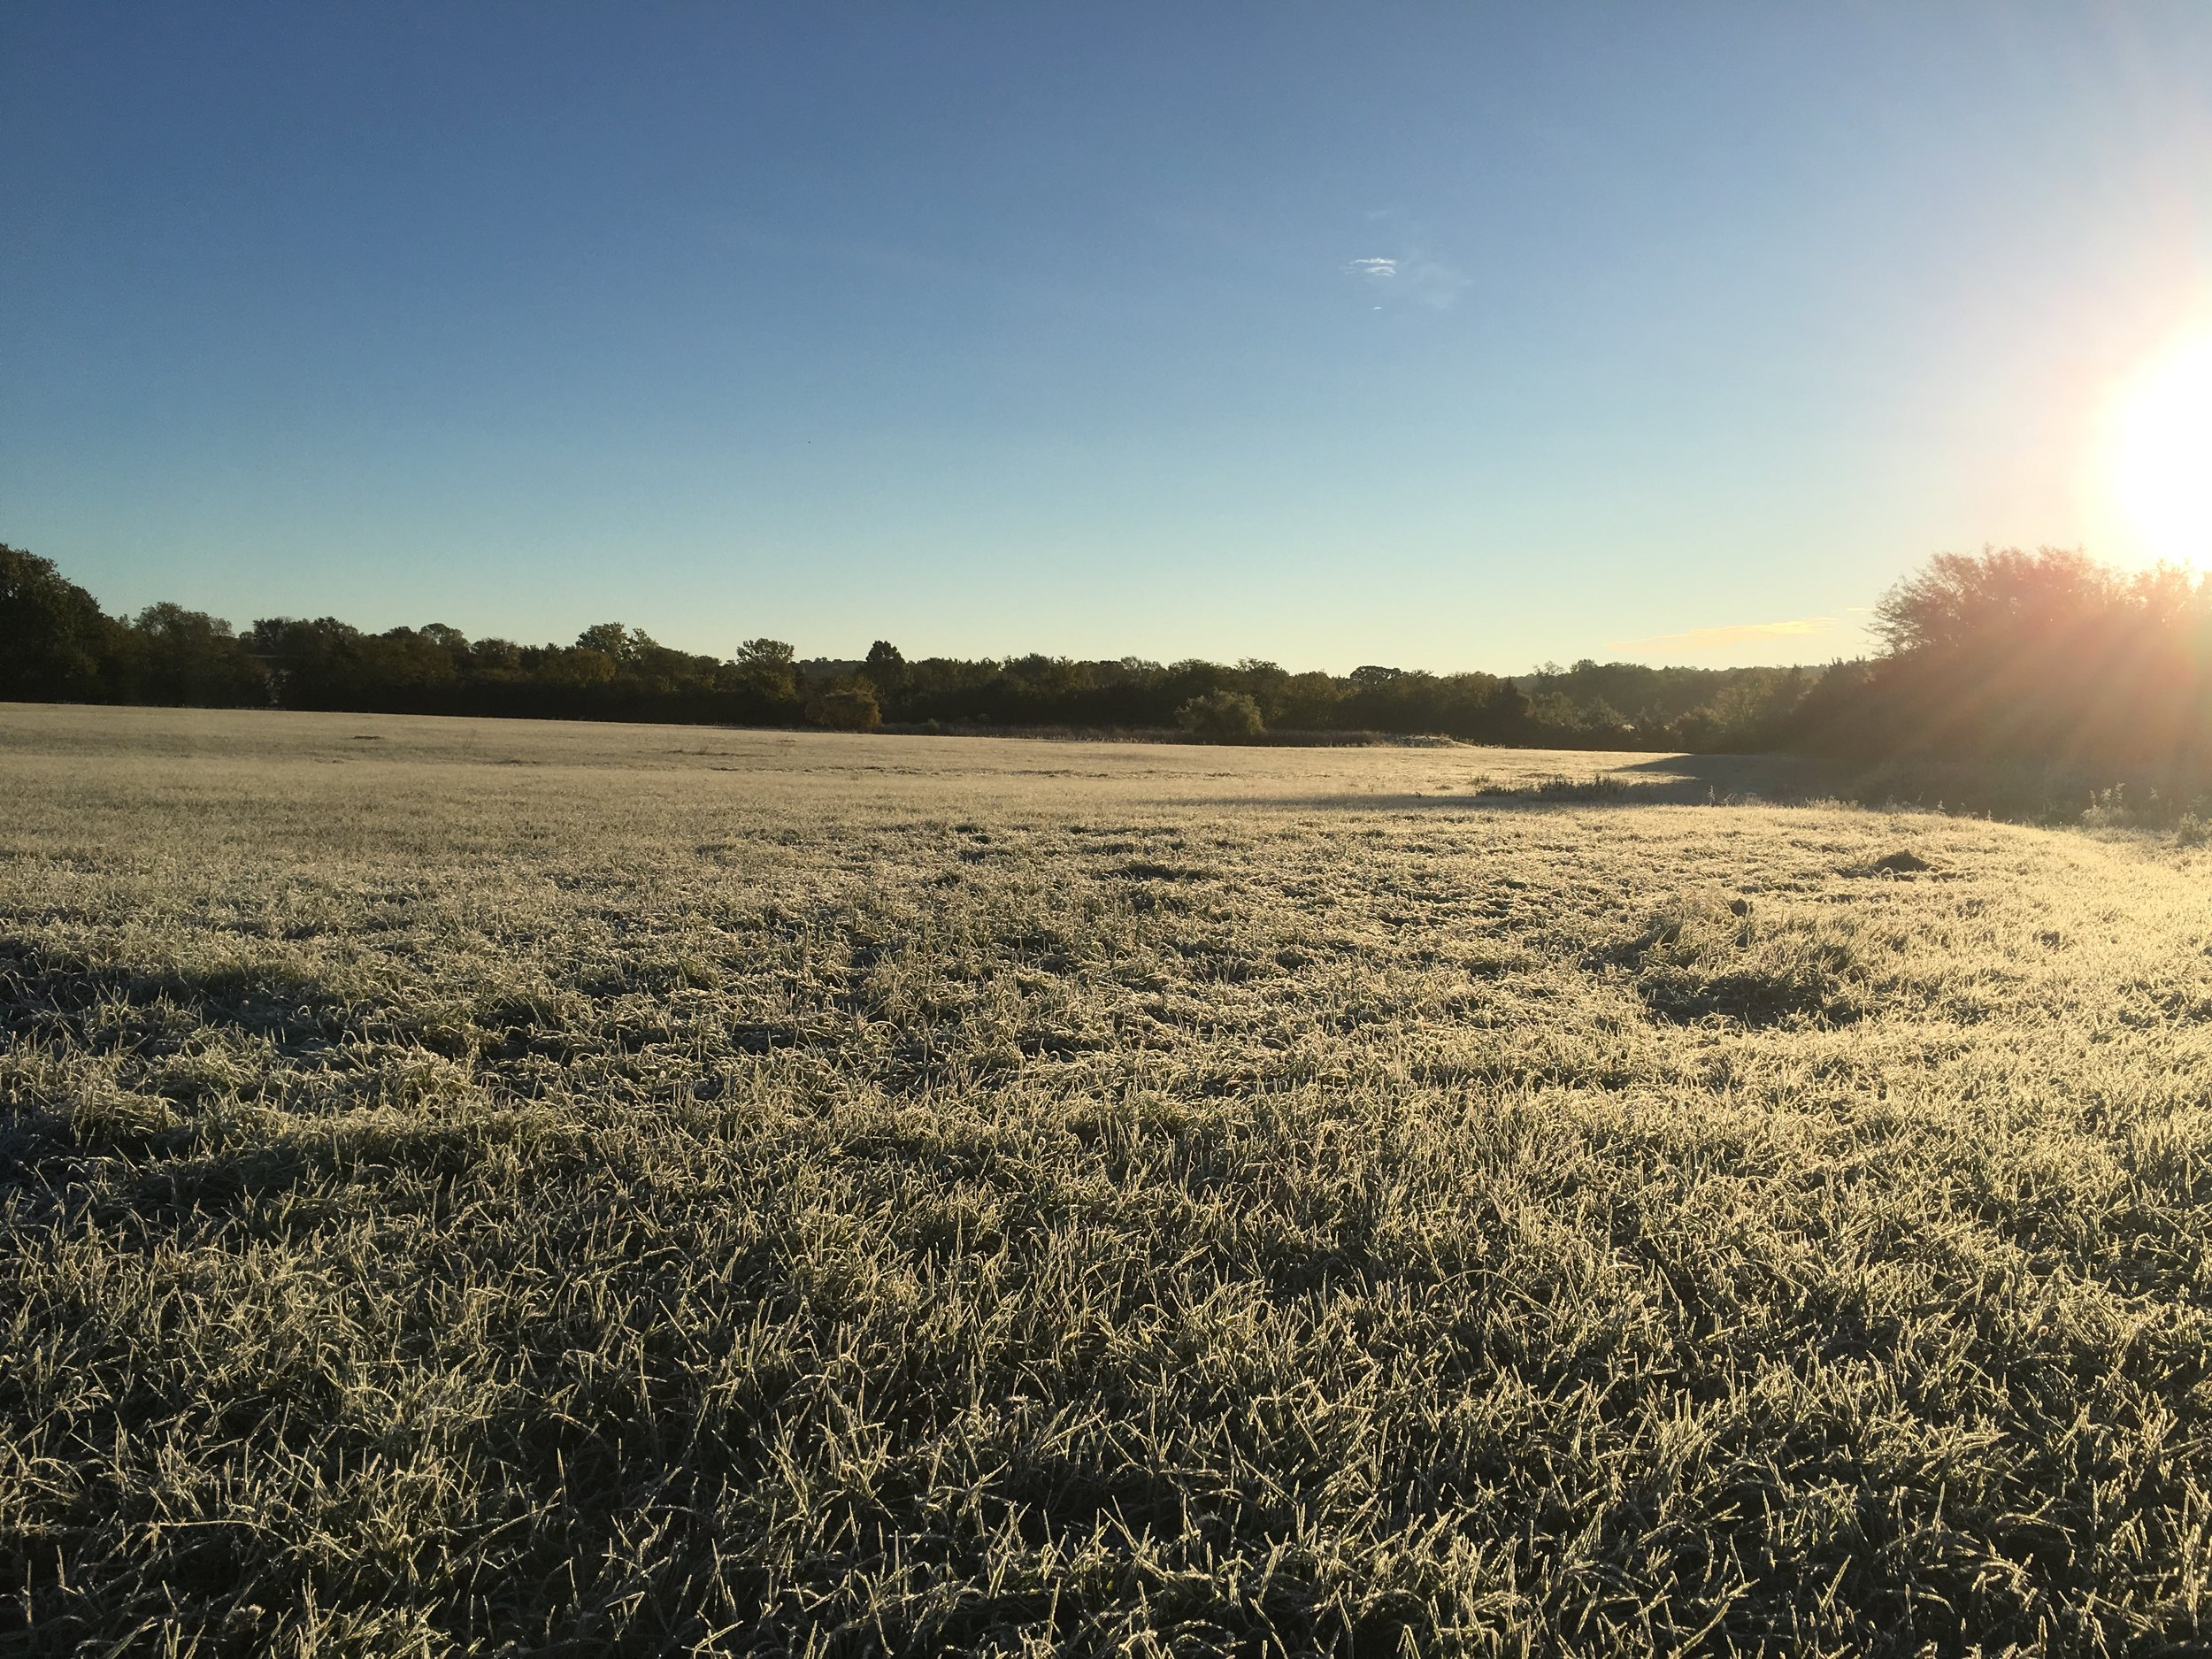 A beautiful frosty morning over the hay field.